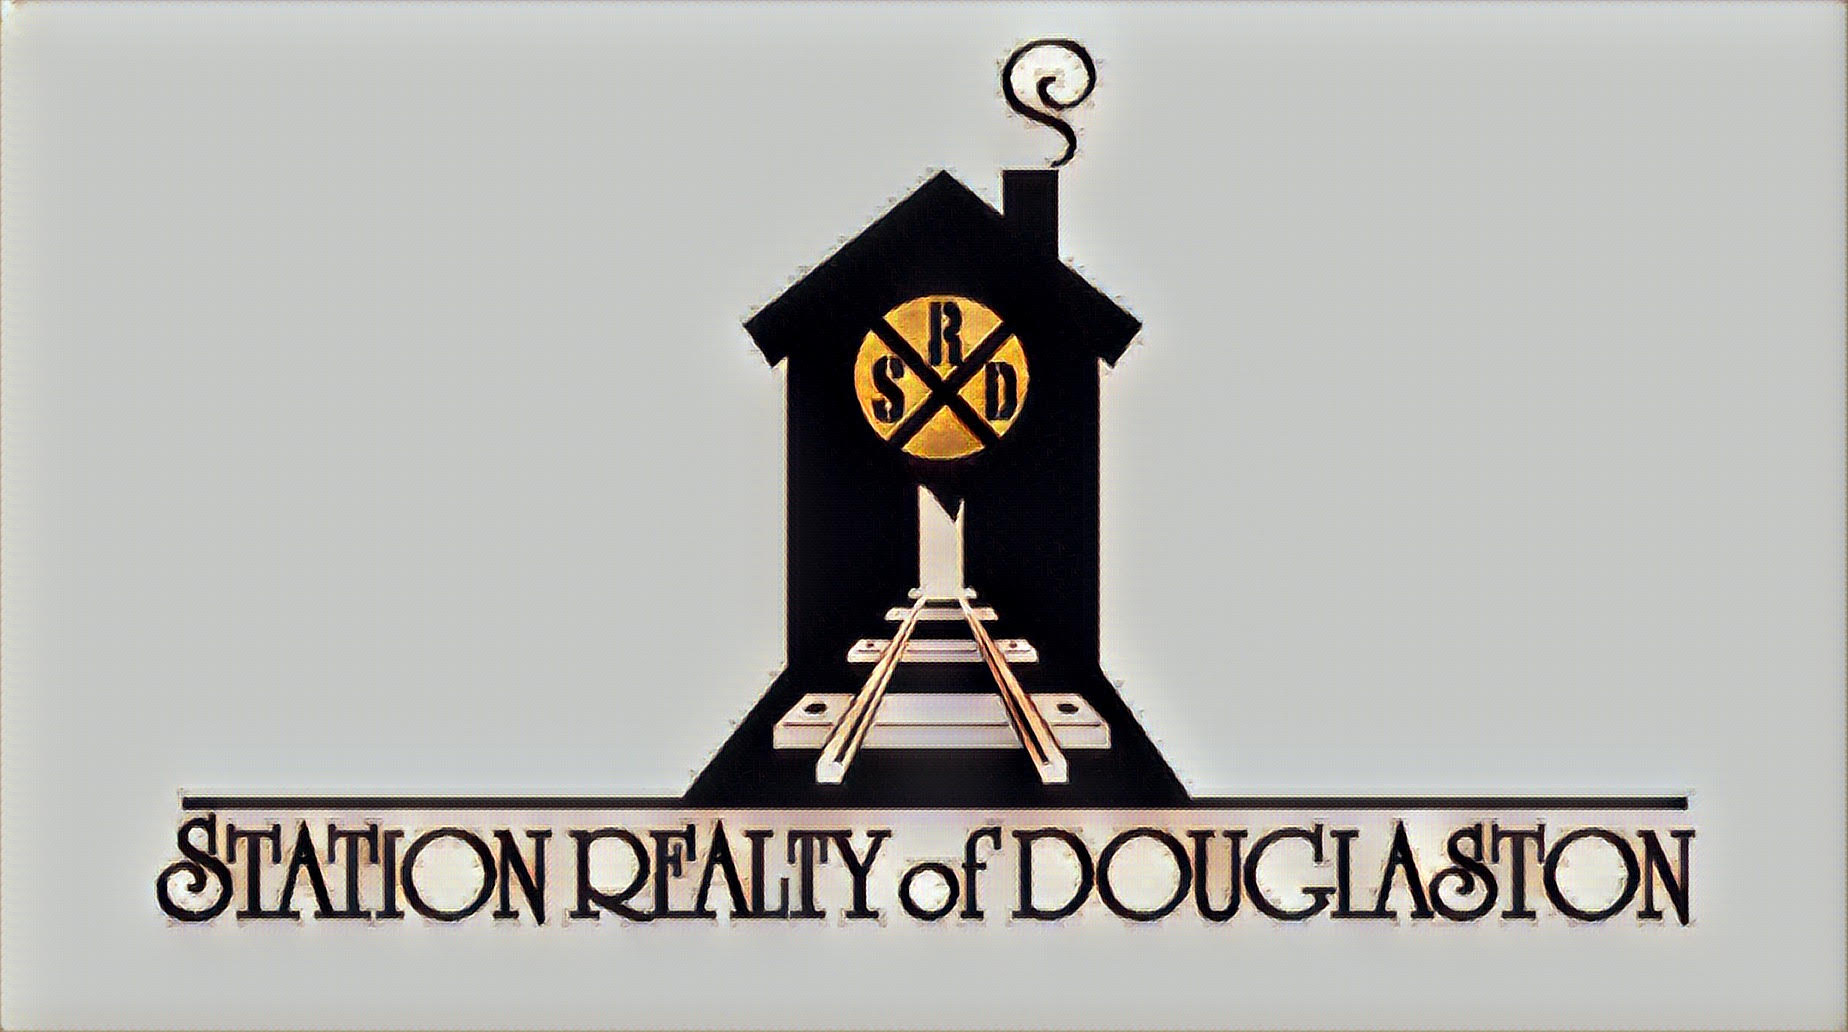 Station Realty of Douglaston